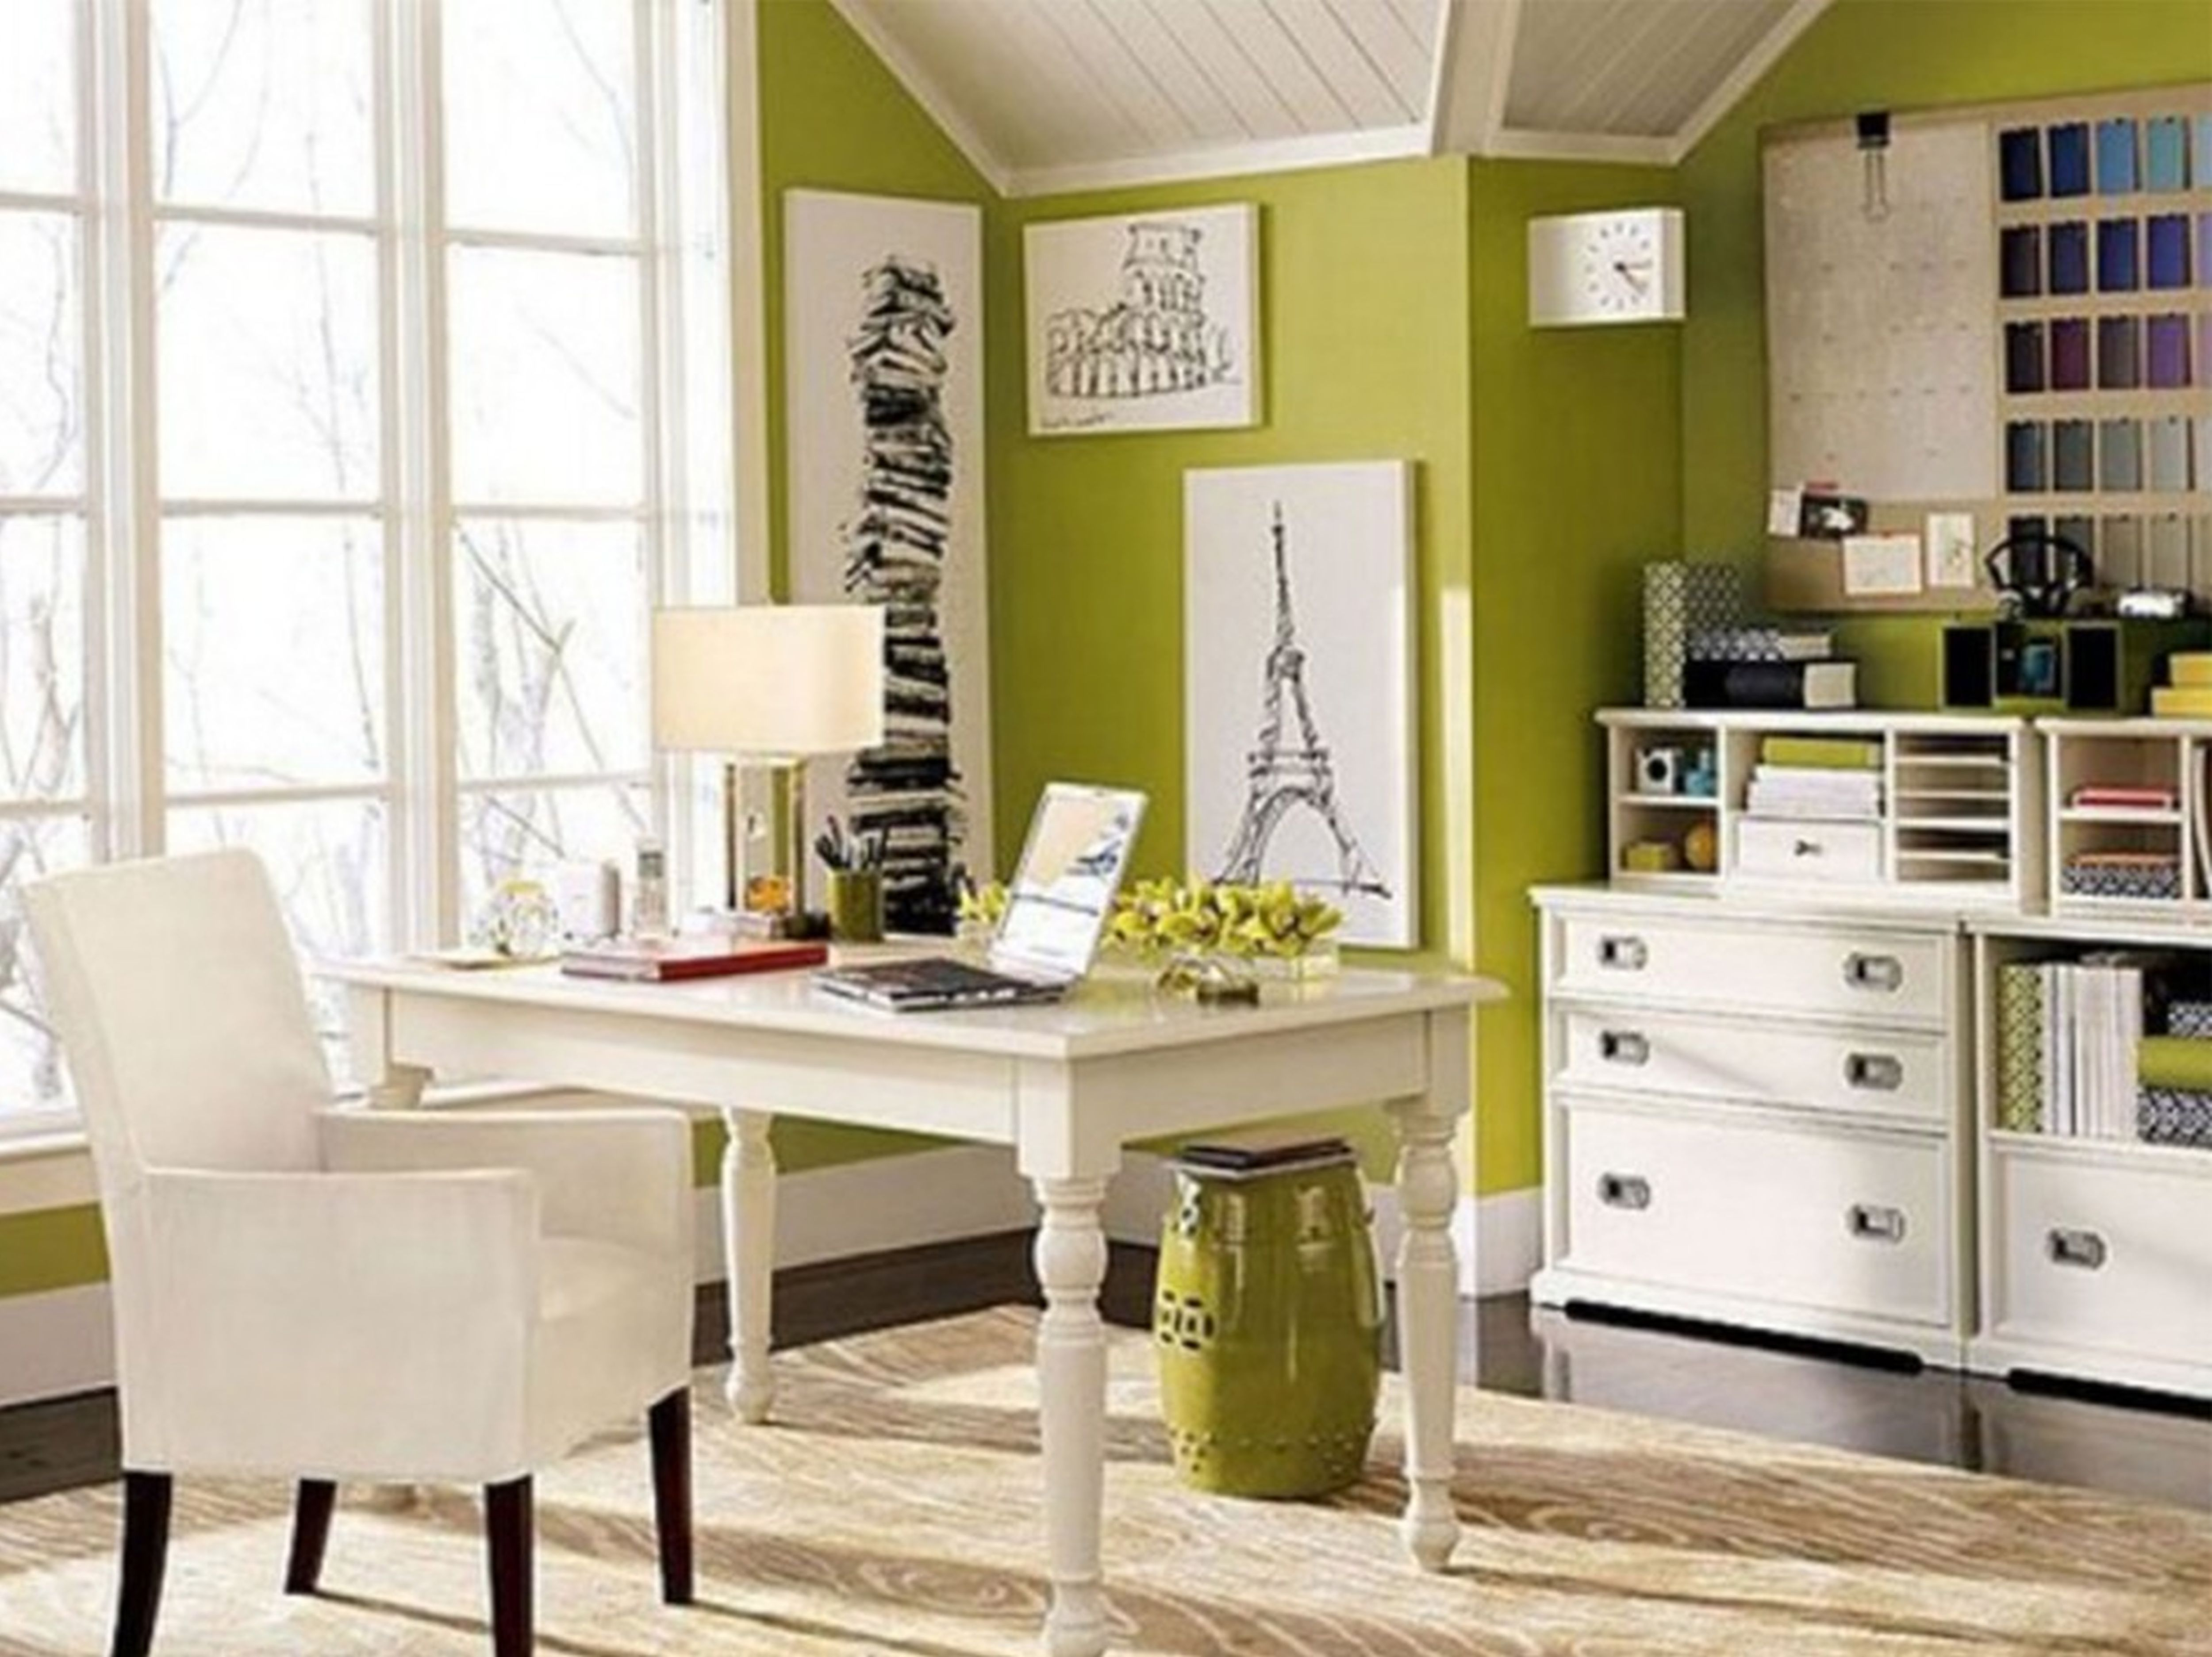 Simple Clic White Wooden Lateral Decorative Filing Cabinets Modern Green Room Elegant Furniture